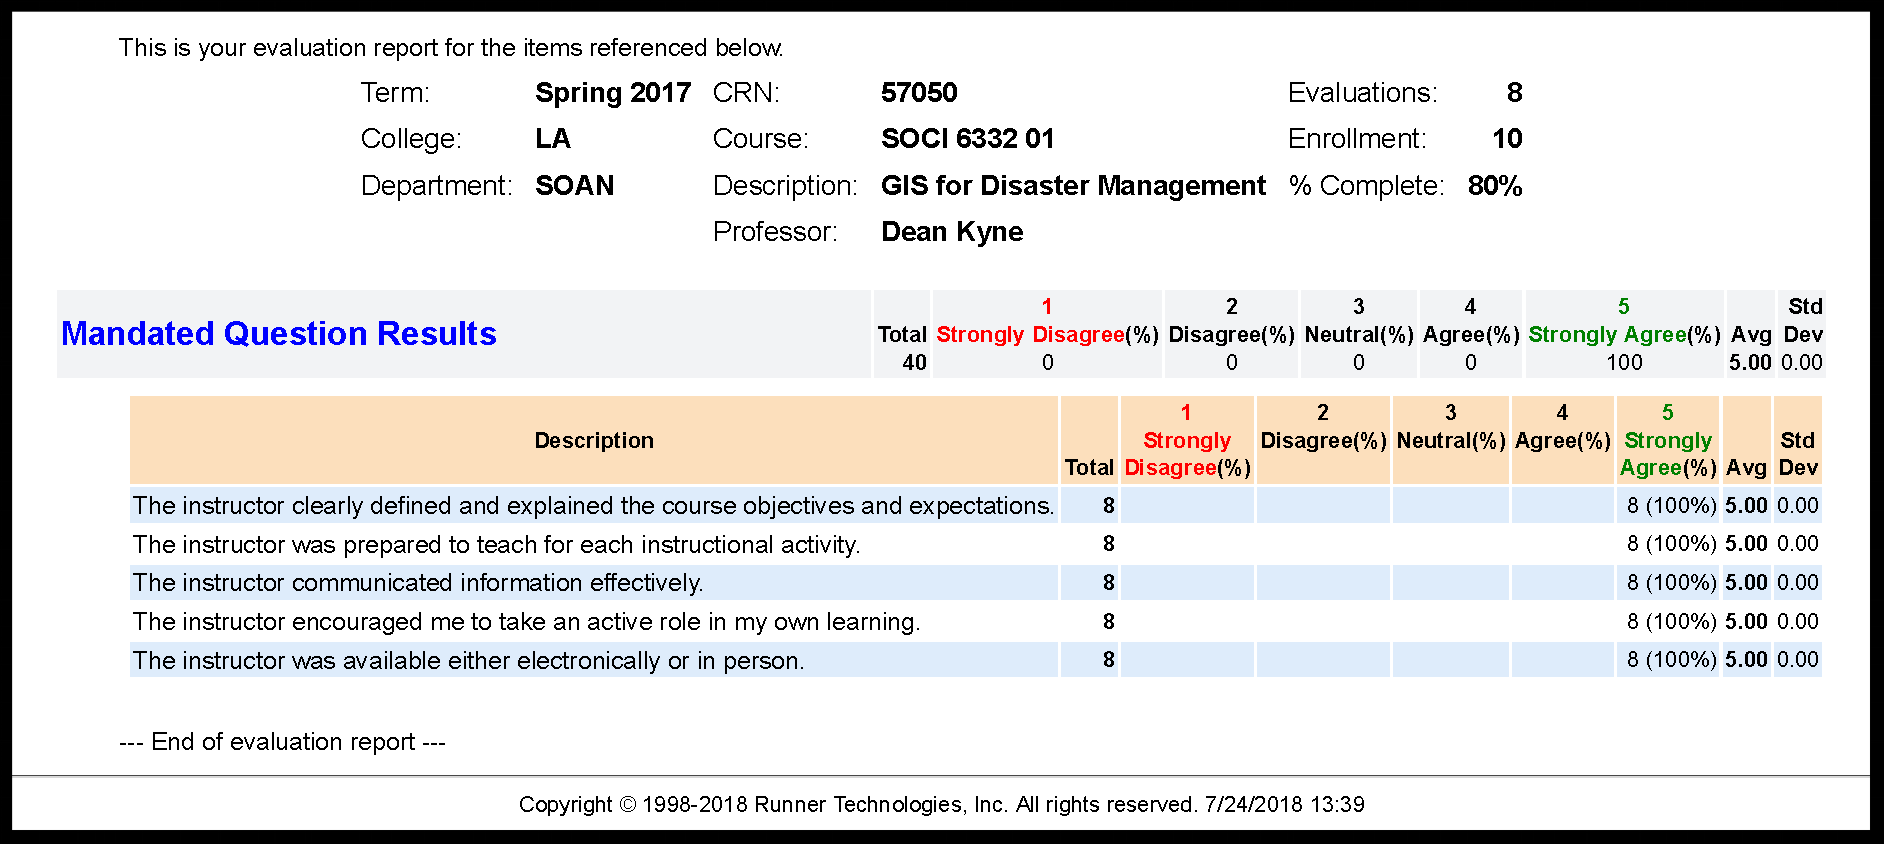 6332 GIS for Disasters_Dean Kyne_Spring 2017.png